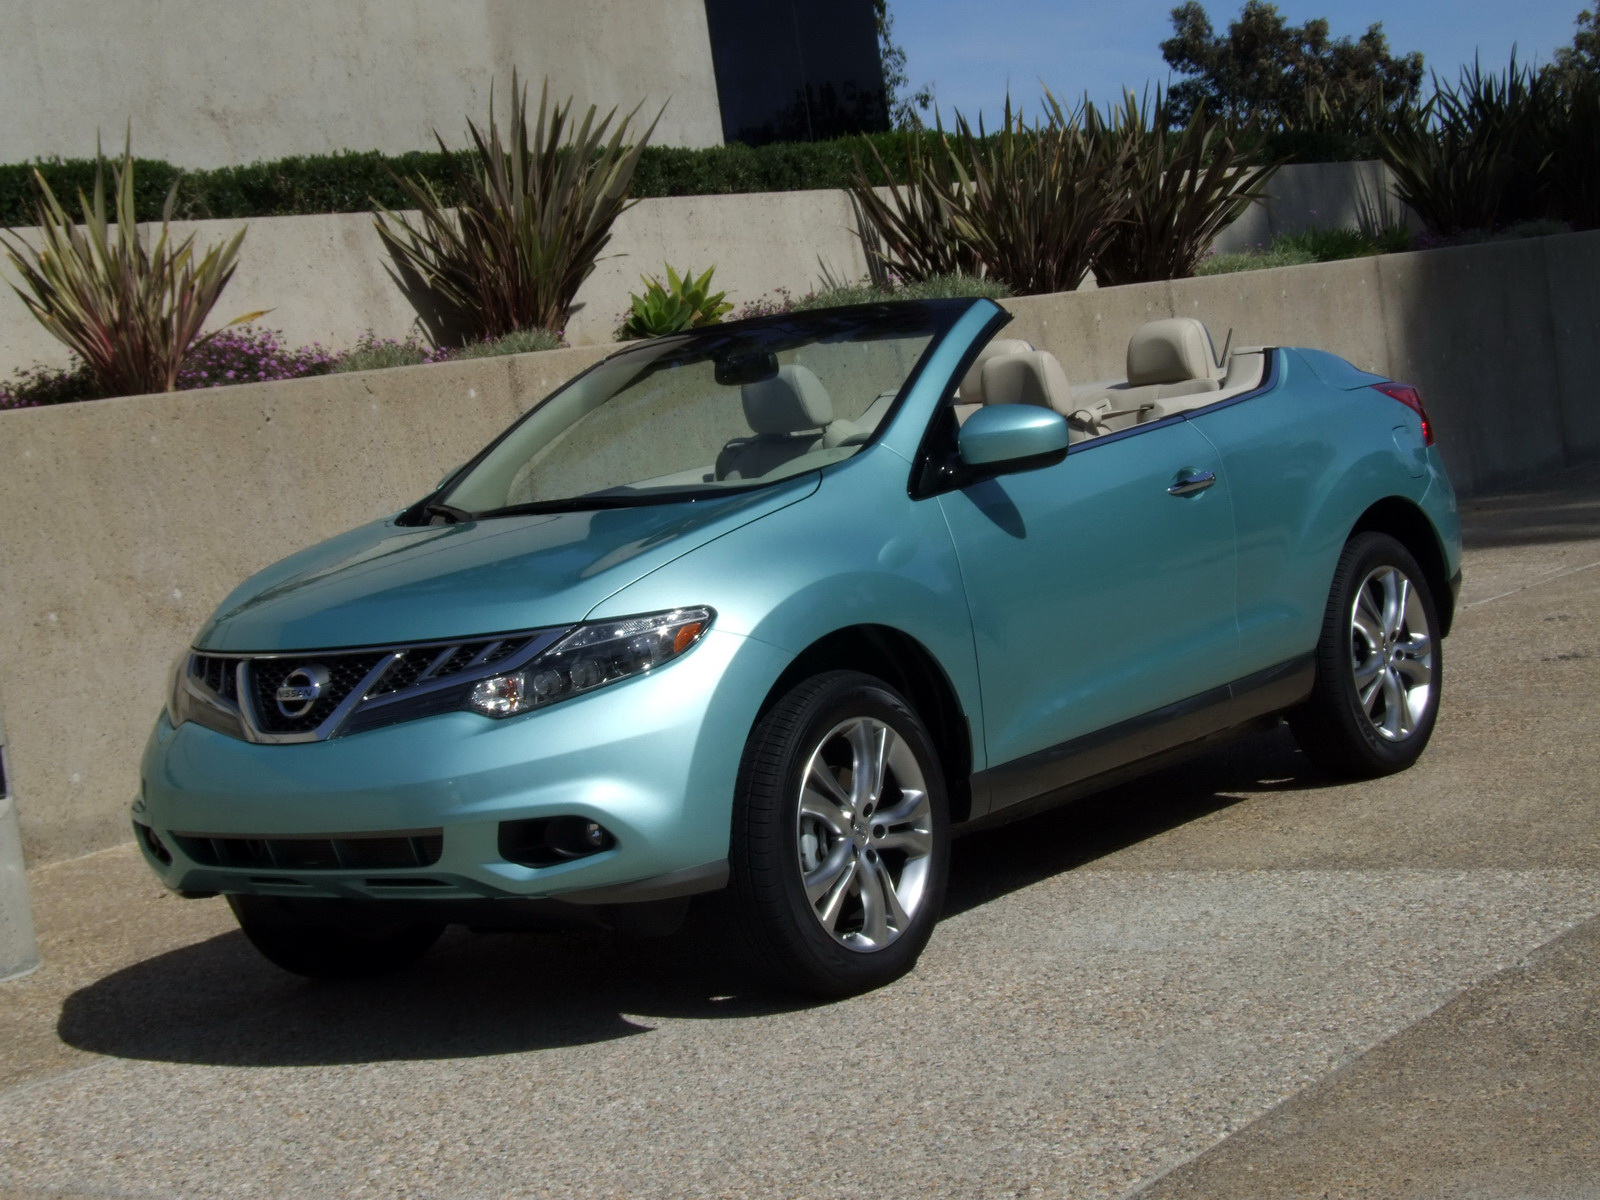 2010 - [Nissan] Murano CrossCabriolet - Page 4 2011-Nissan-Murano-CC-TD-634